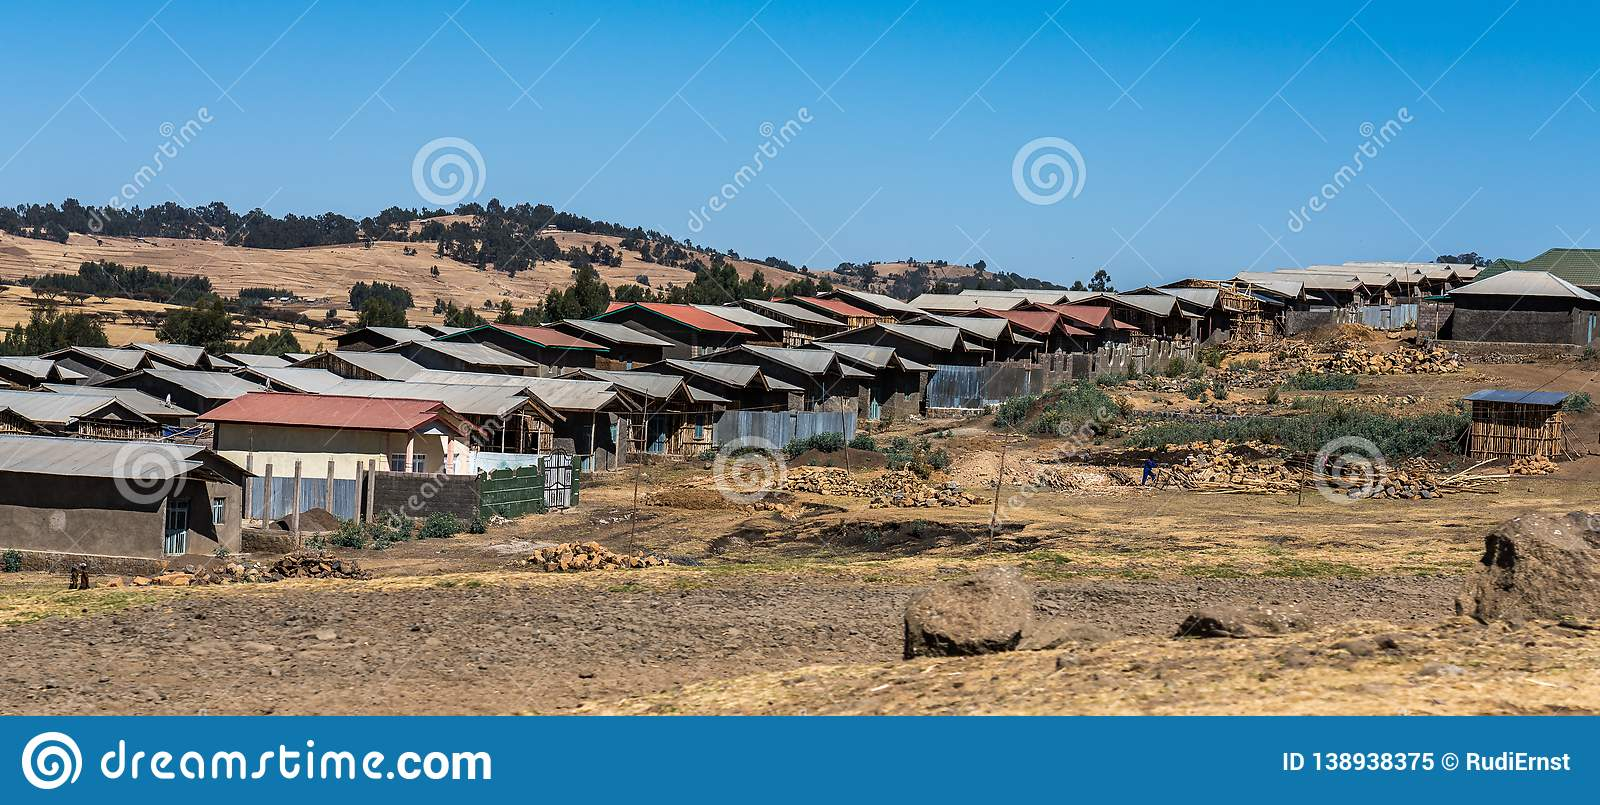 A little village in the Simien Mountains in Northern Ethiopia